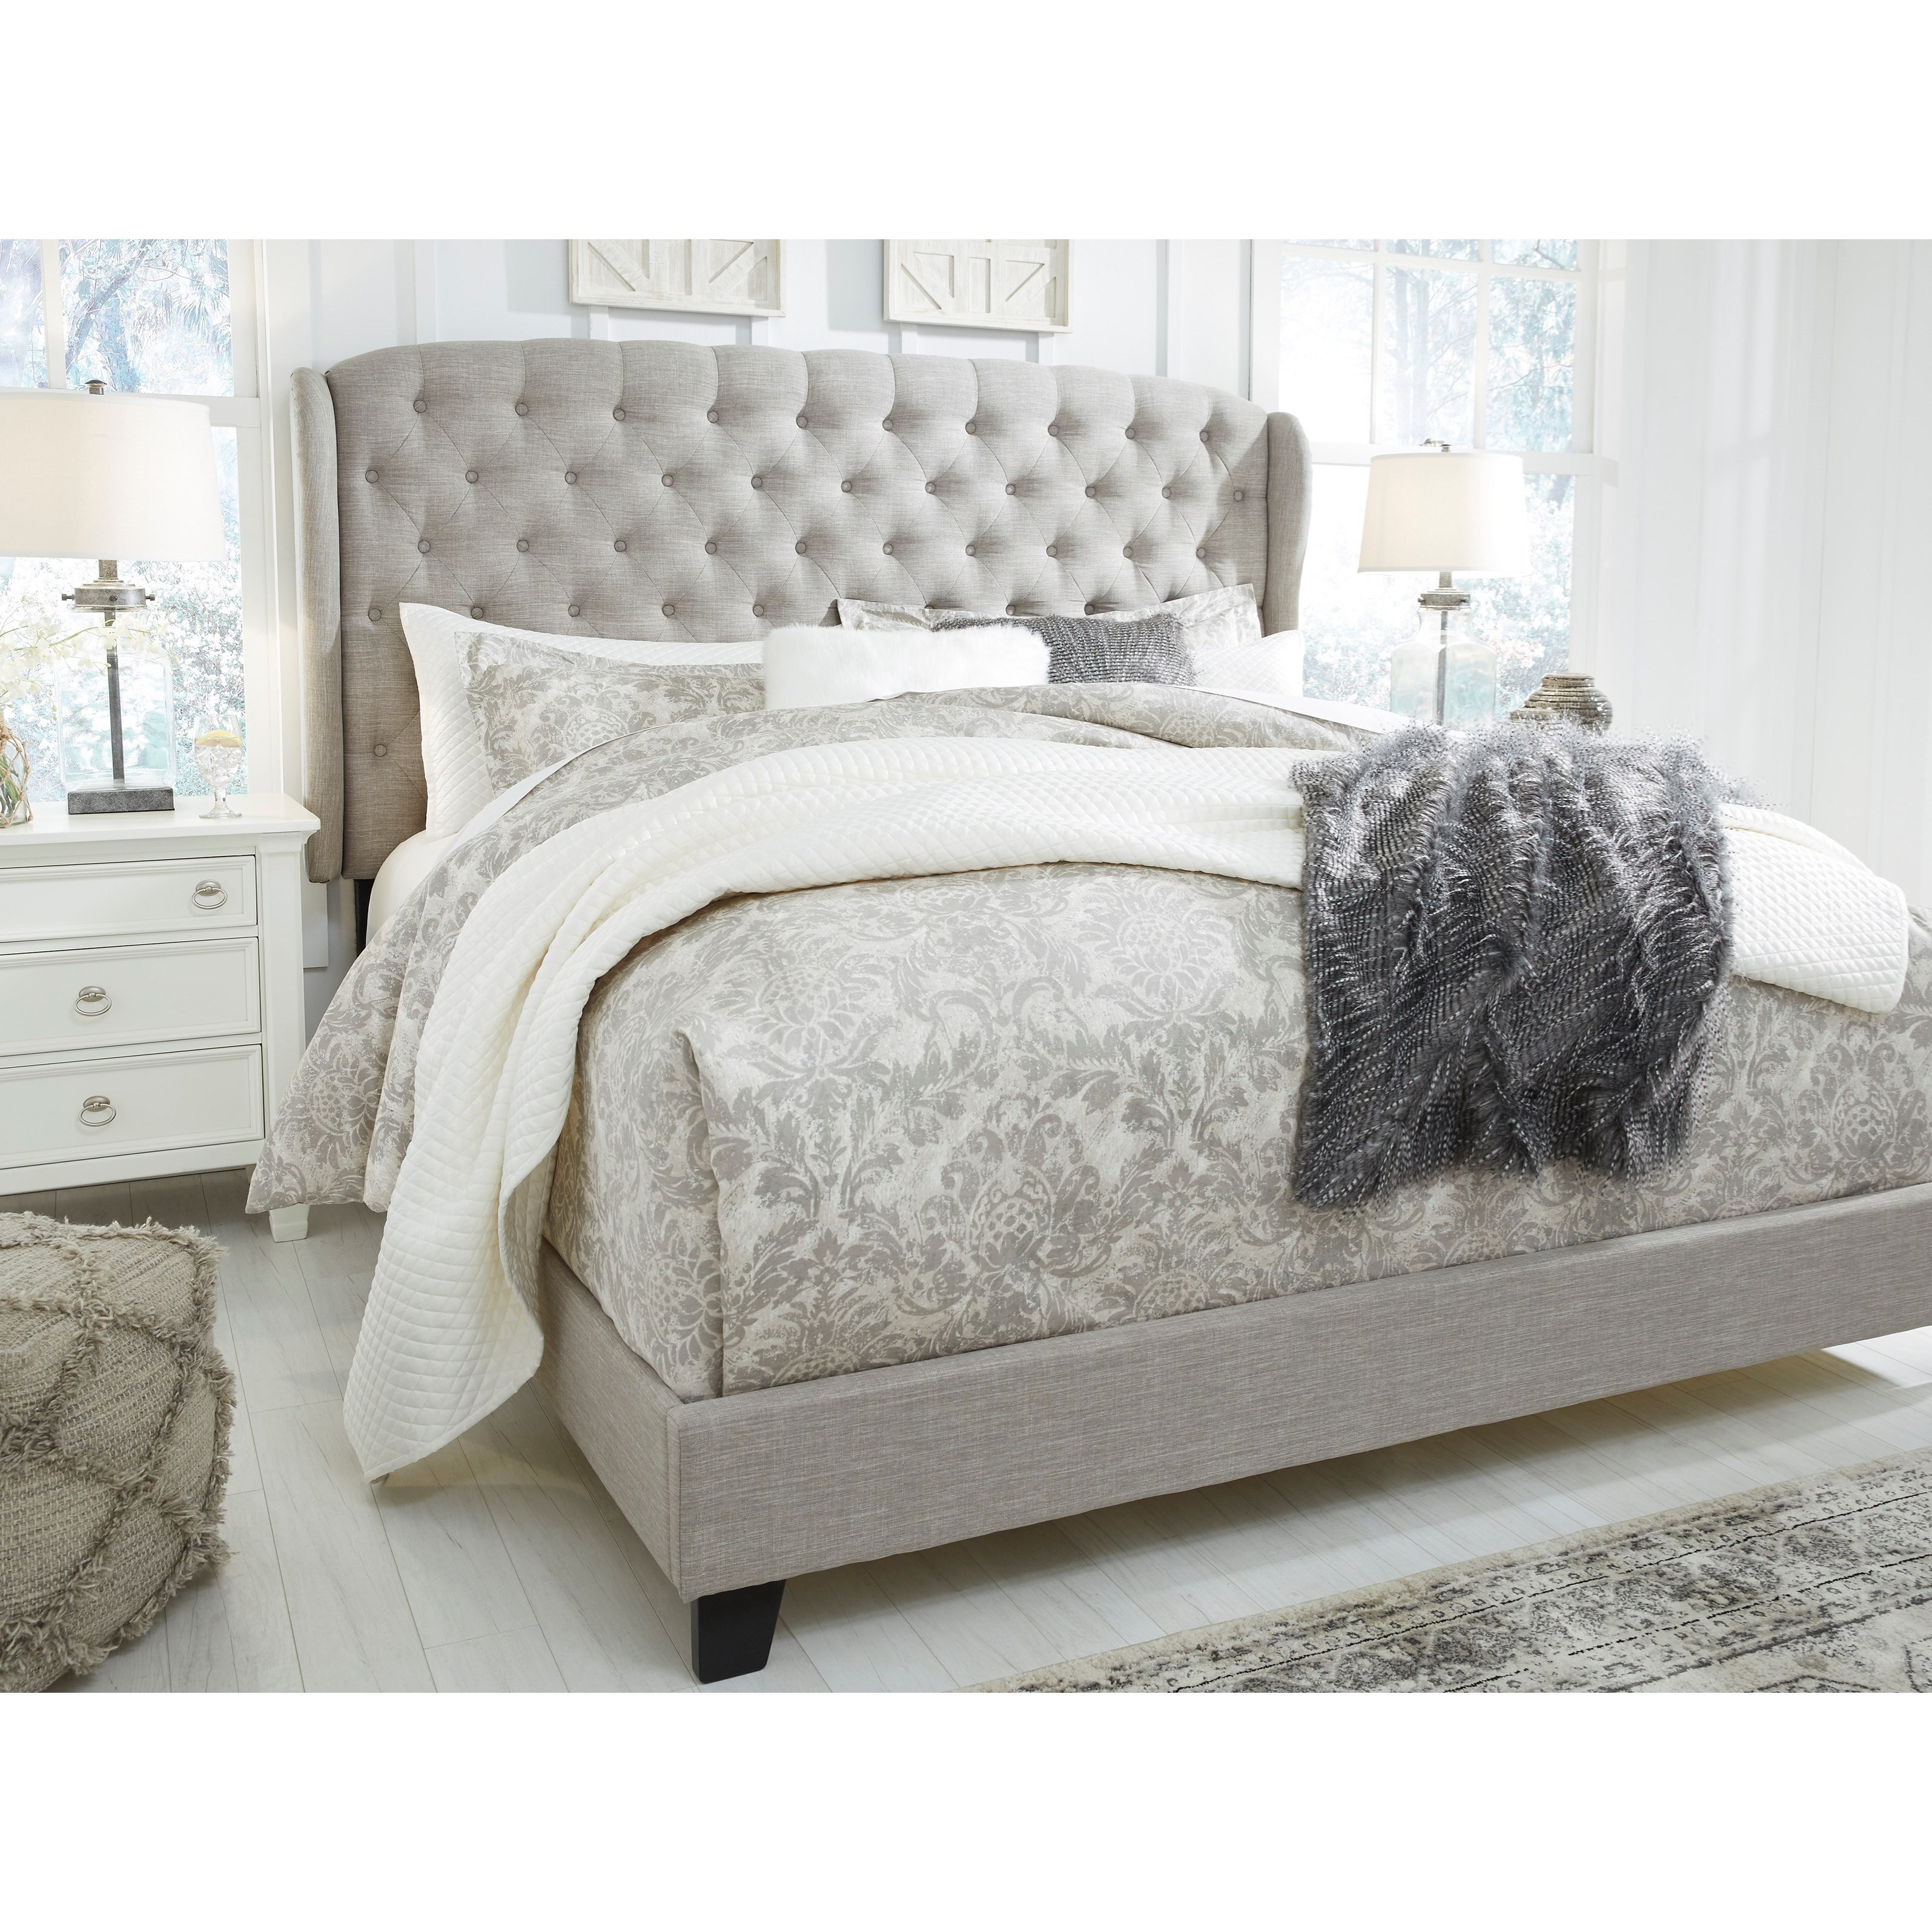 Signature Design By Ashley Jerary Queen Upholstered Bed With Tufted Wing Headboard Royal Furniture Upholstered Beds